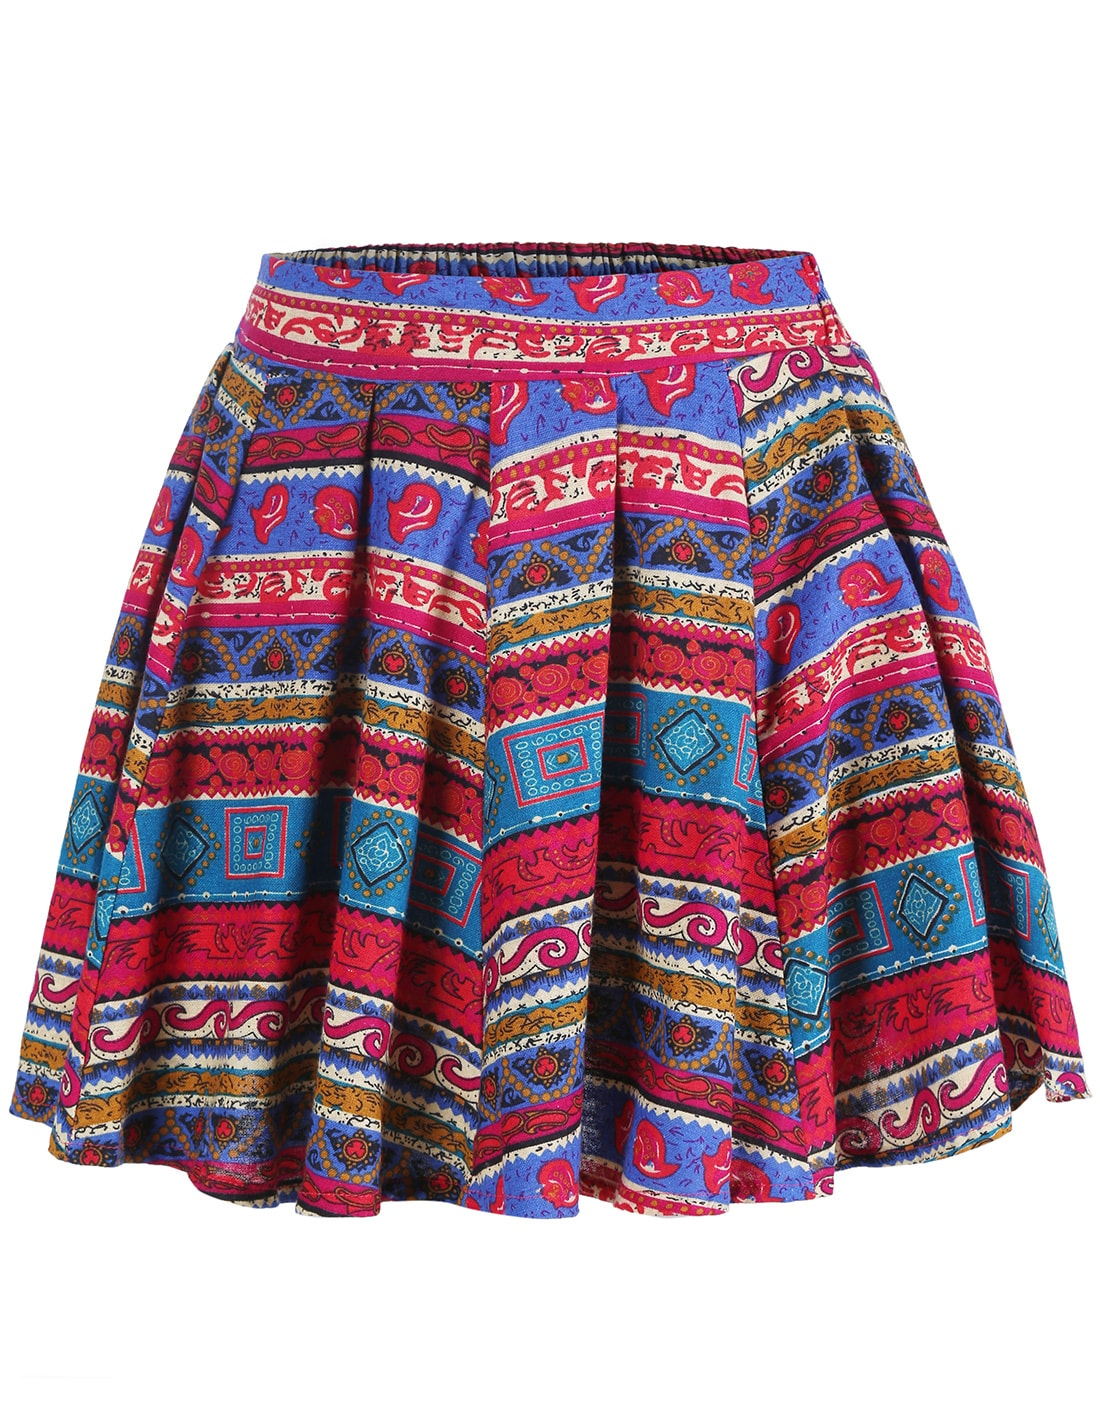 Red Blue Tribal Print Pleated Skirt -SheIn(Sheinside)